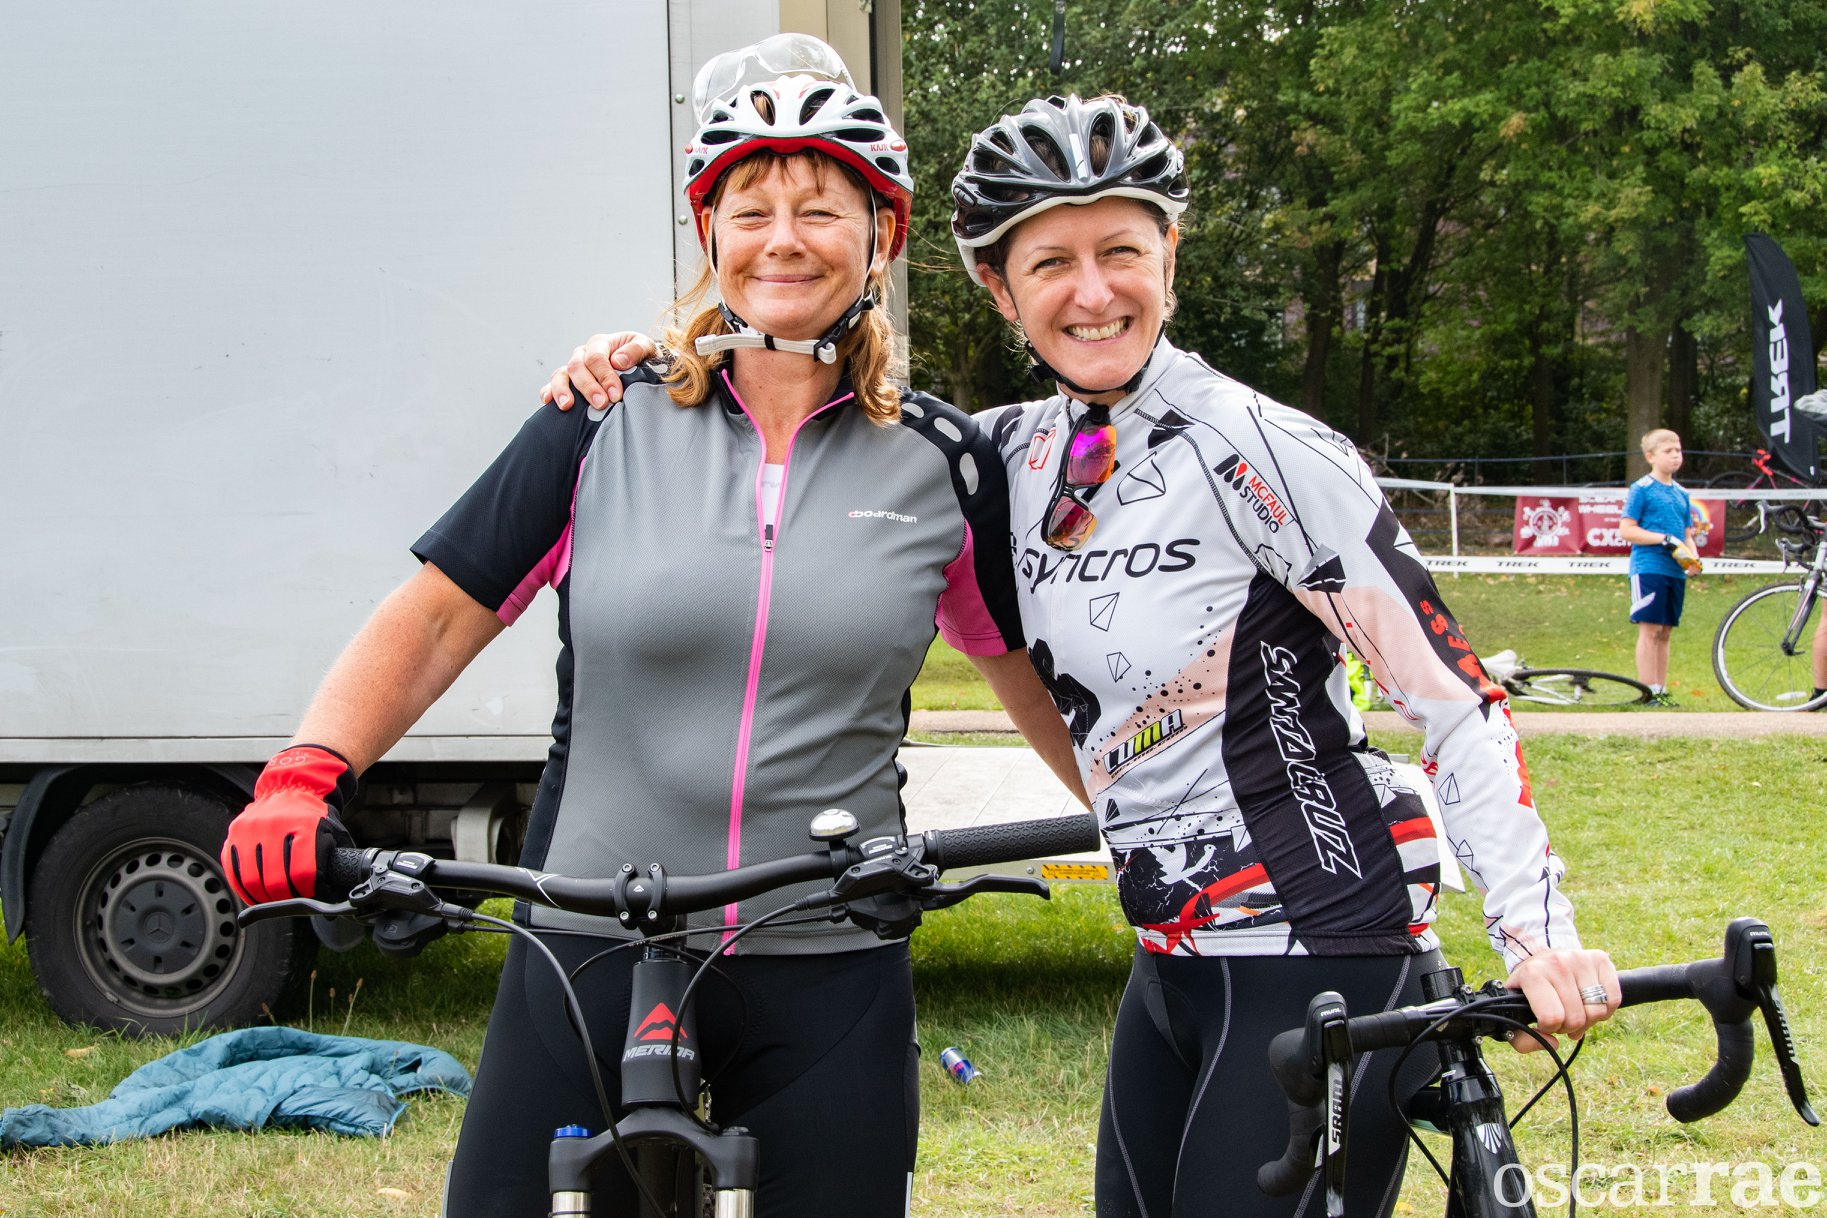 Susan and Lorraine – both now hooked on Cyclocross